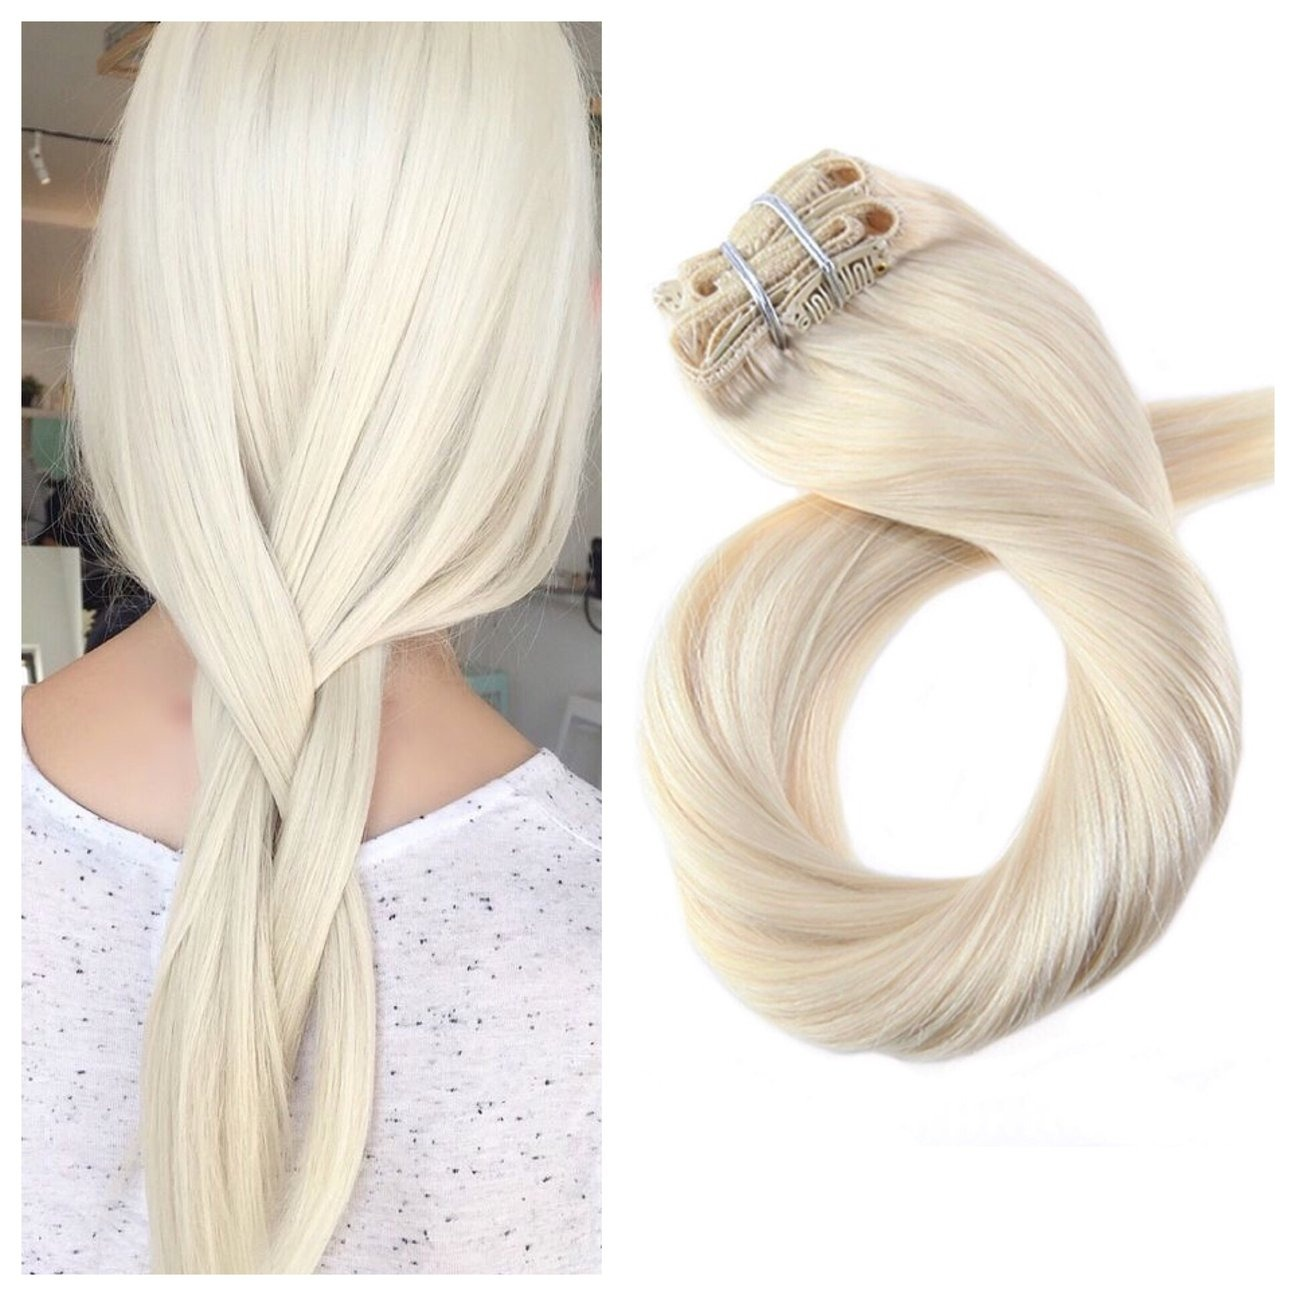 Platinum Blonde Hair Extensions 24 Remy Human Hair 180g Double Weft